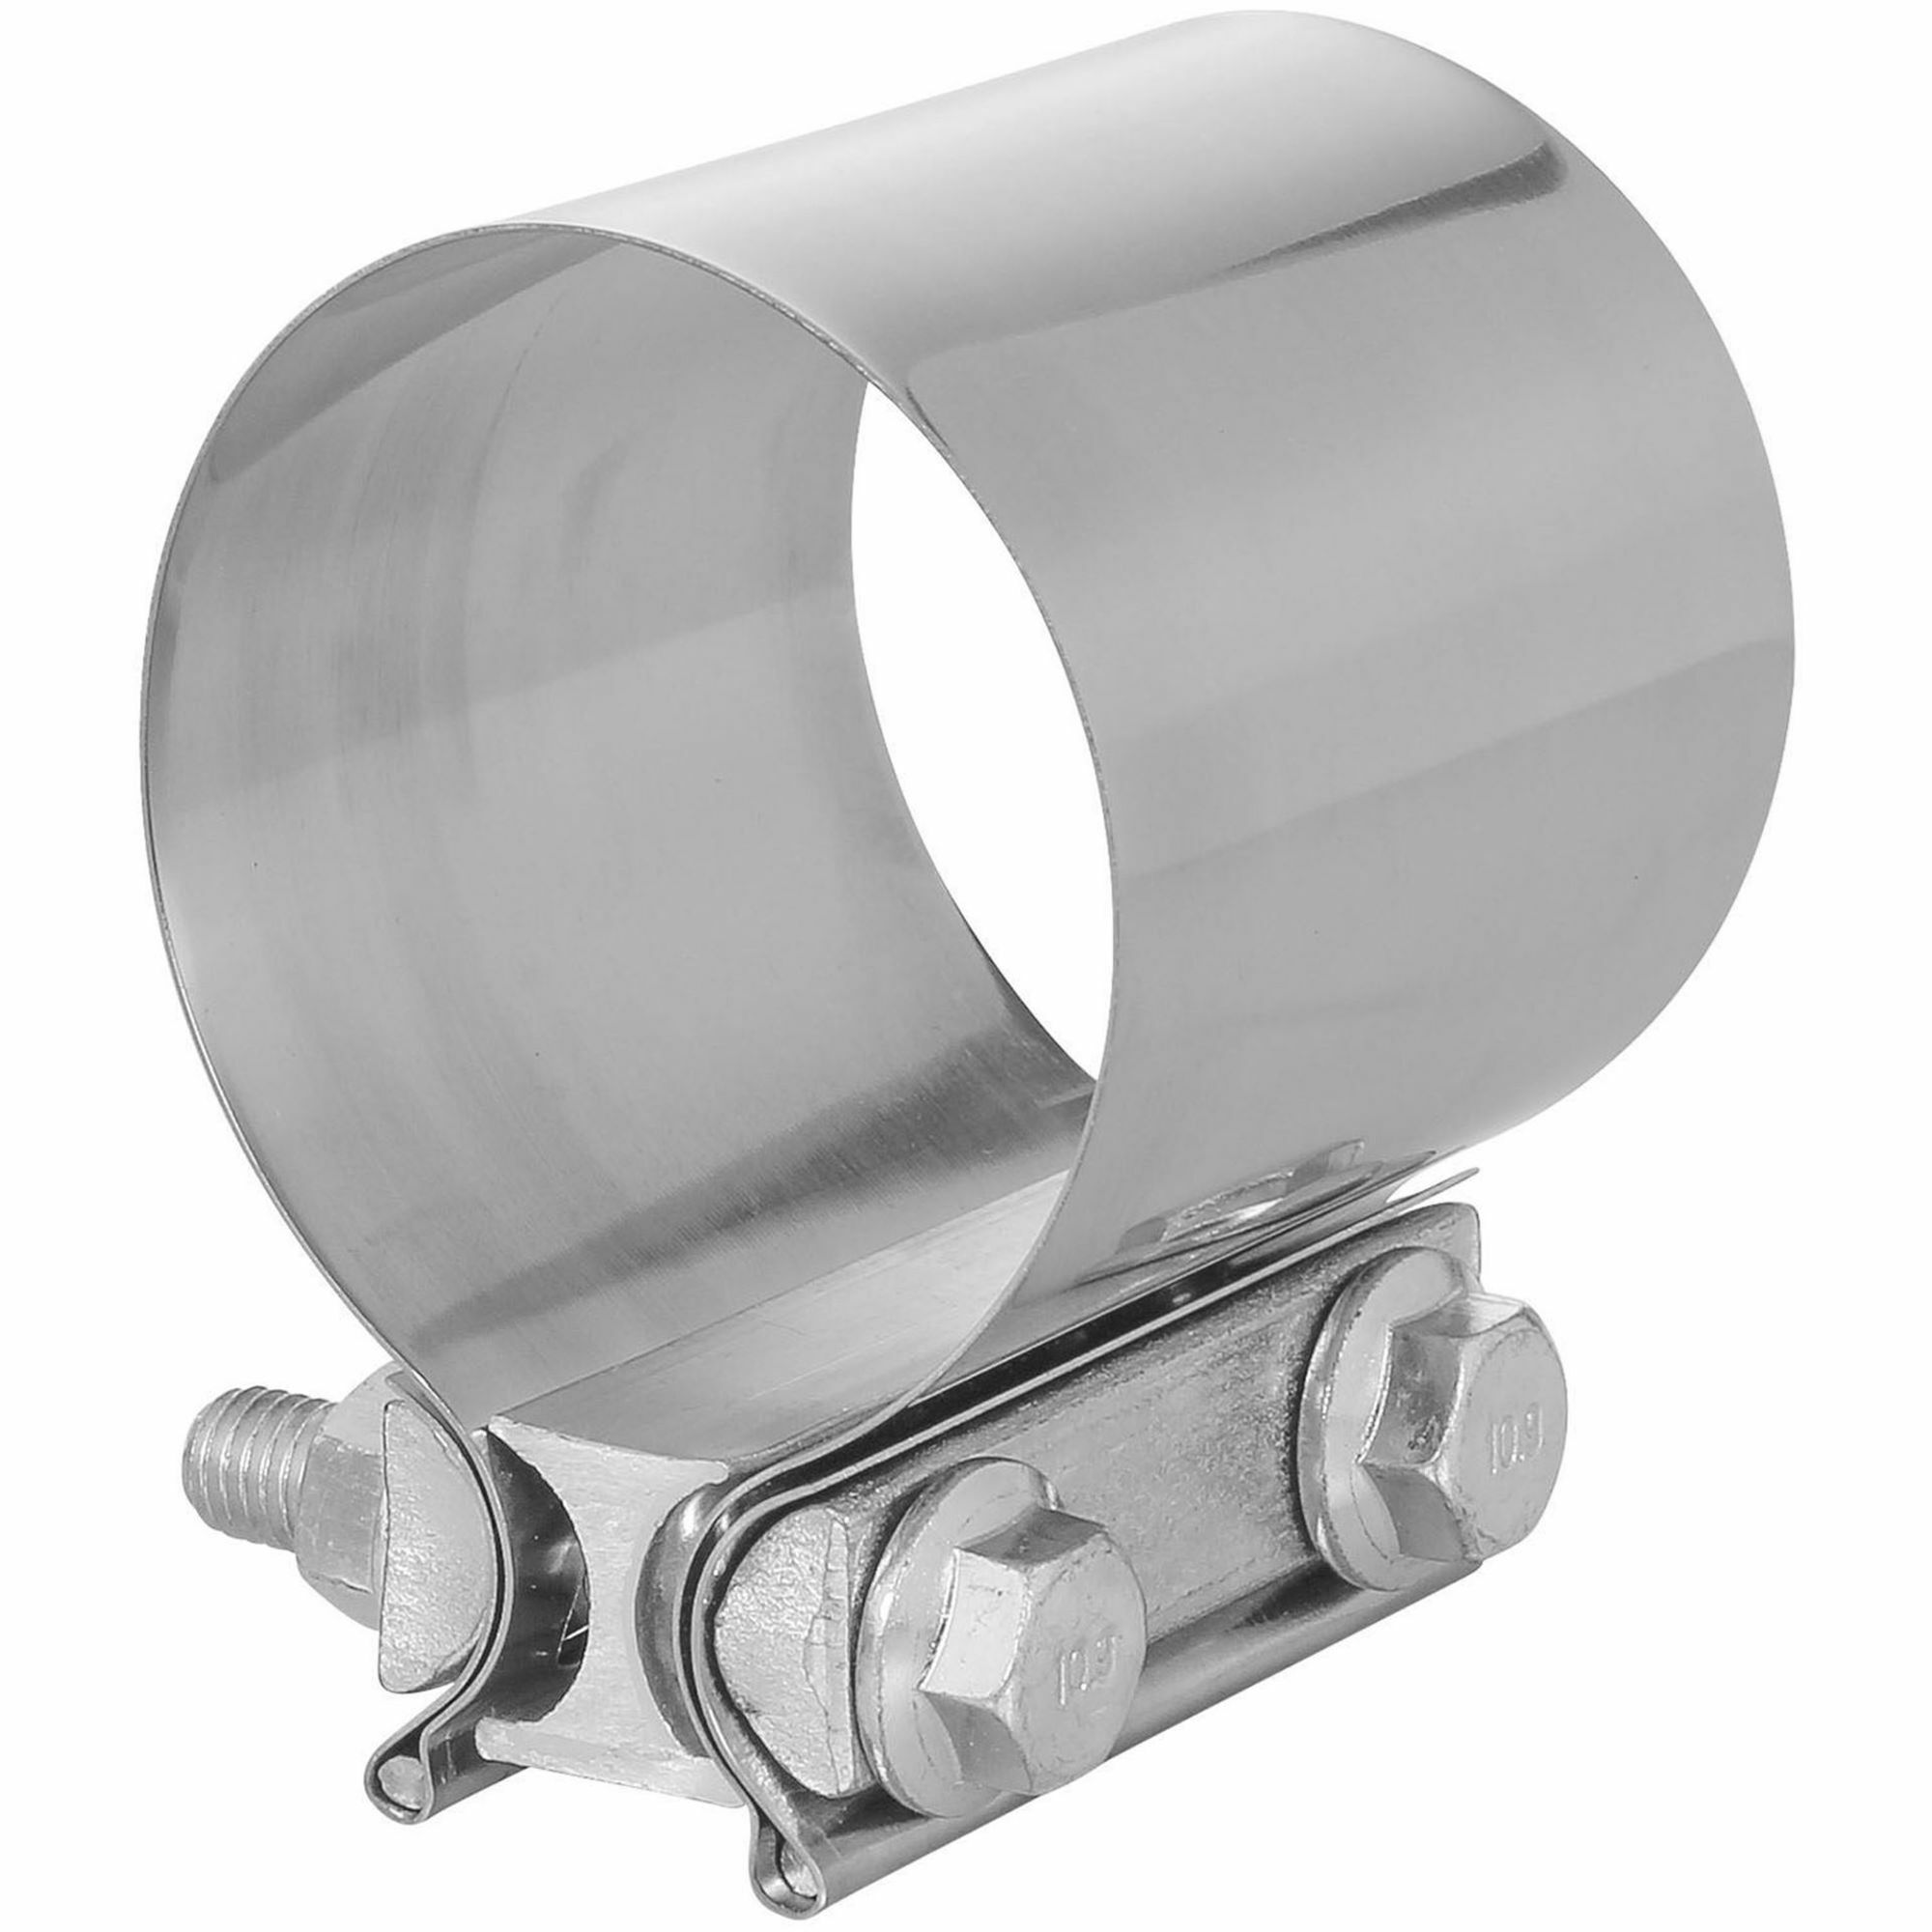 TOTALFLOW TF-JB61 Butt Joint Exhaust Muffler Clamp Band   3.5 Inch